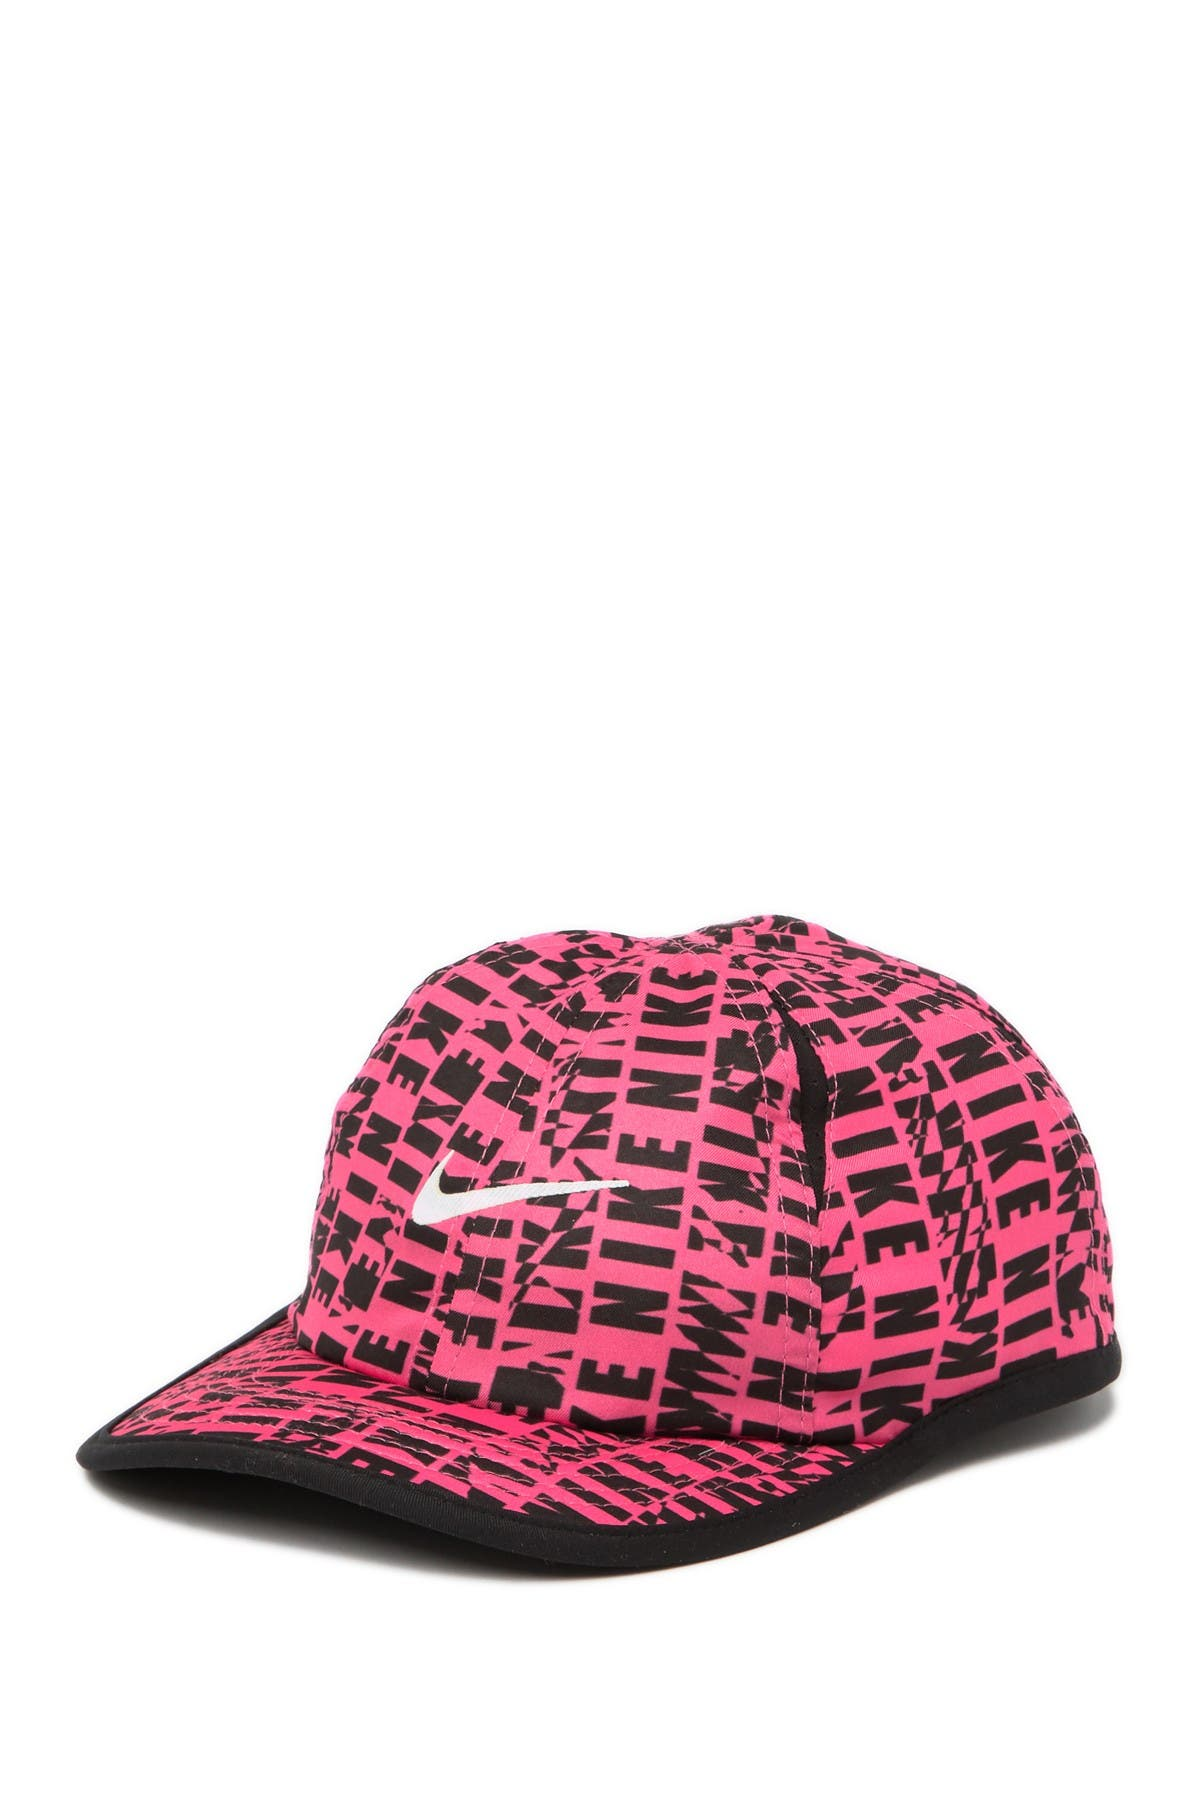 Image of Nike Graphic Cap